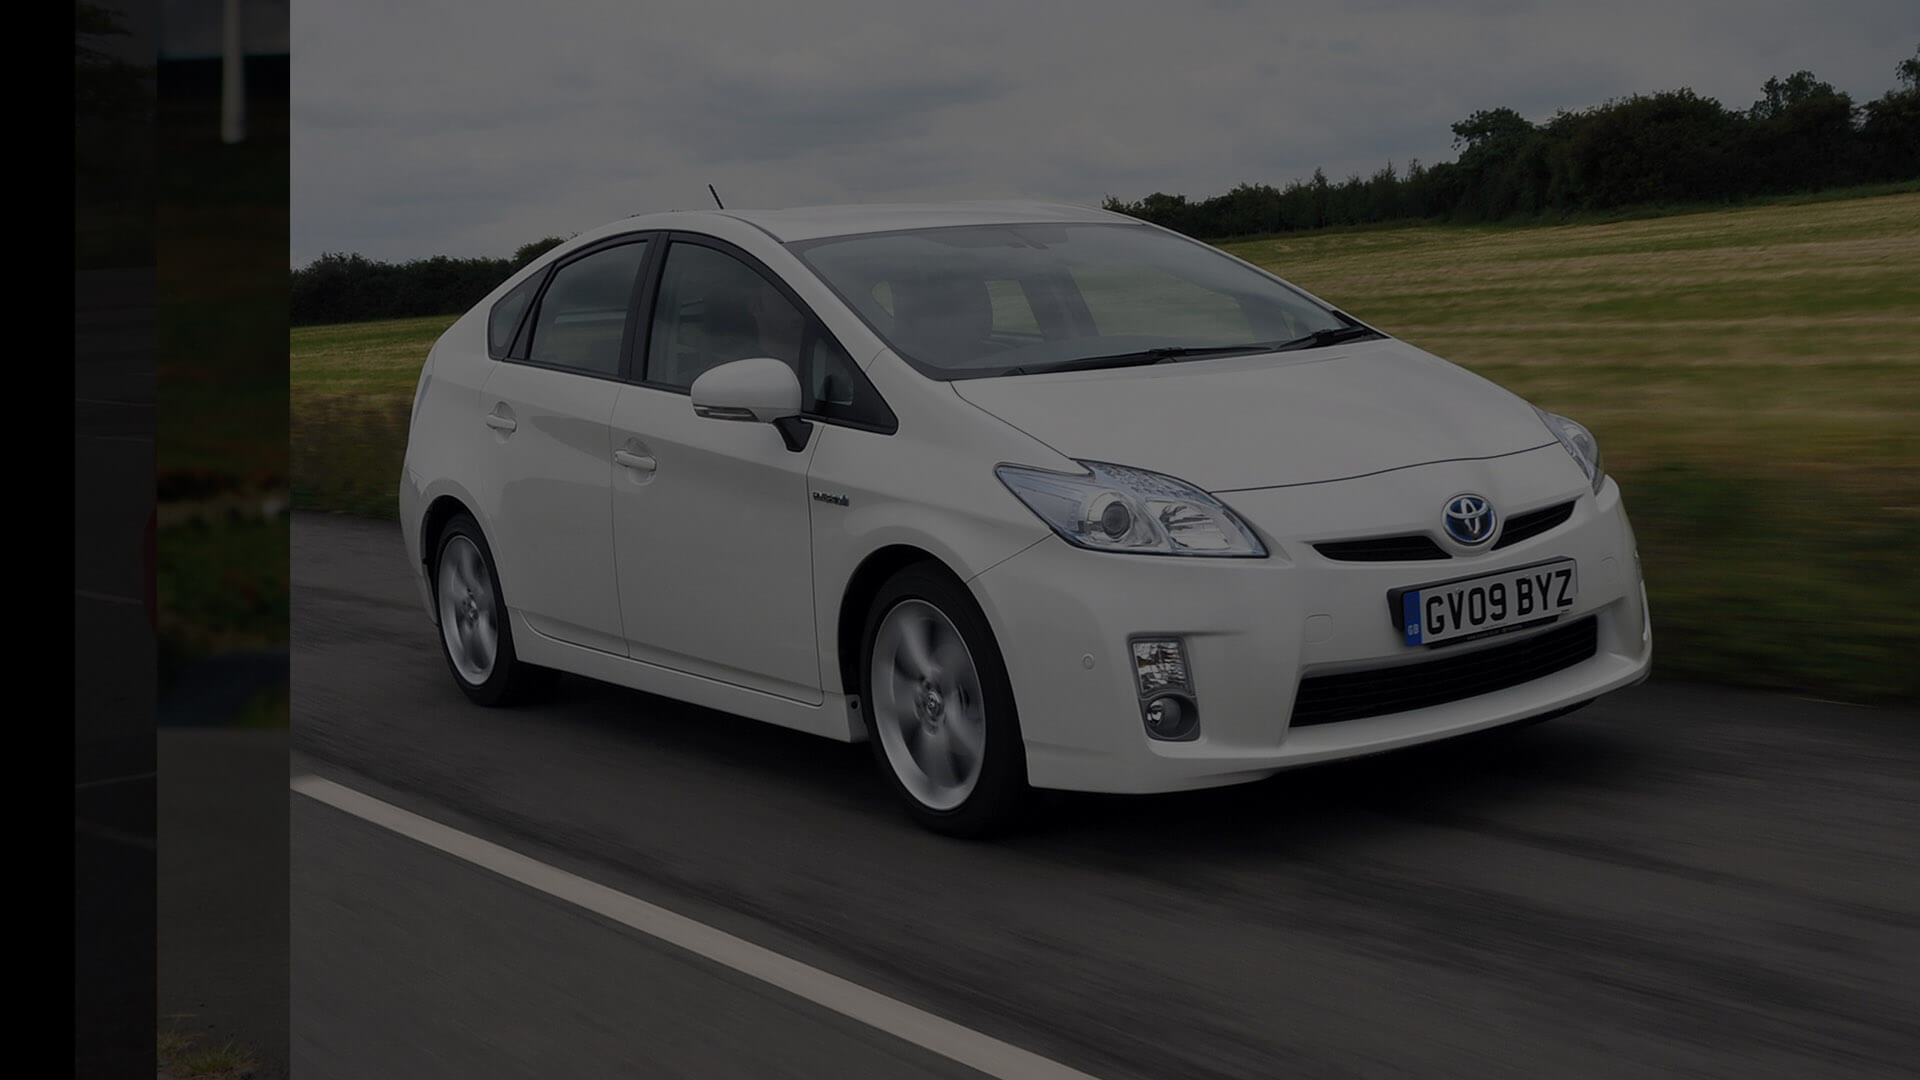 Toyota Prius 3rd gen   Carista OBD2 supported vehicles   See what's